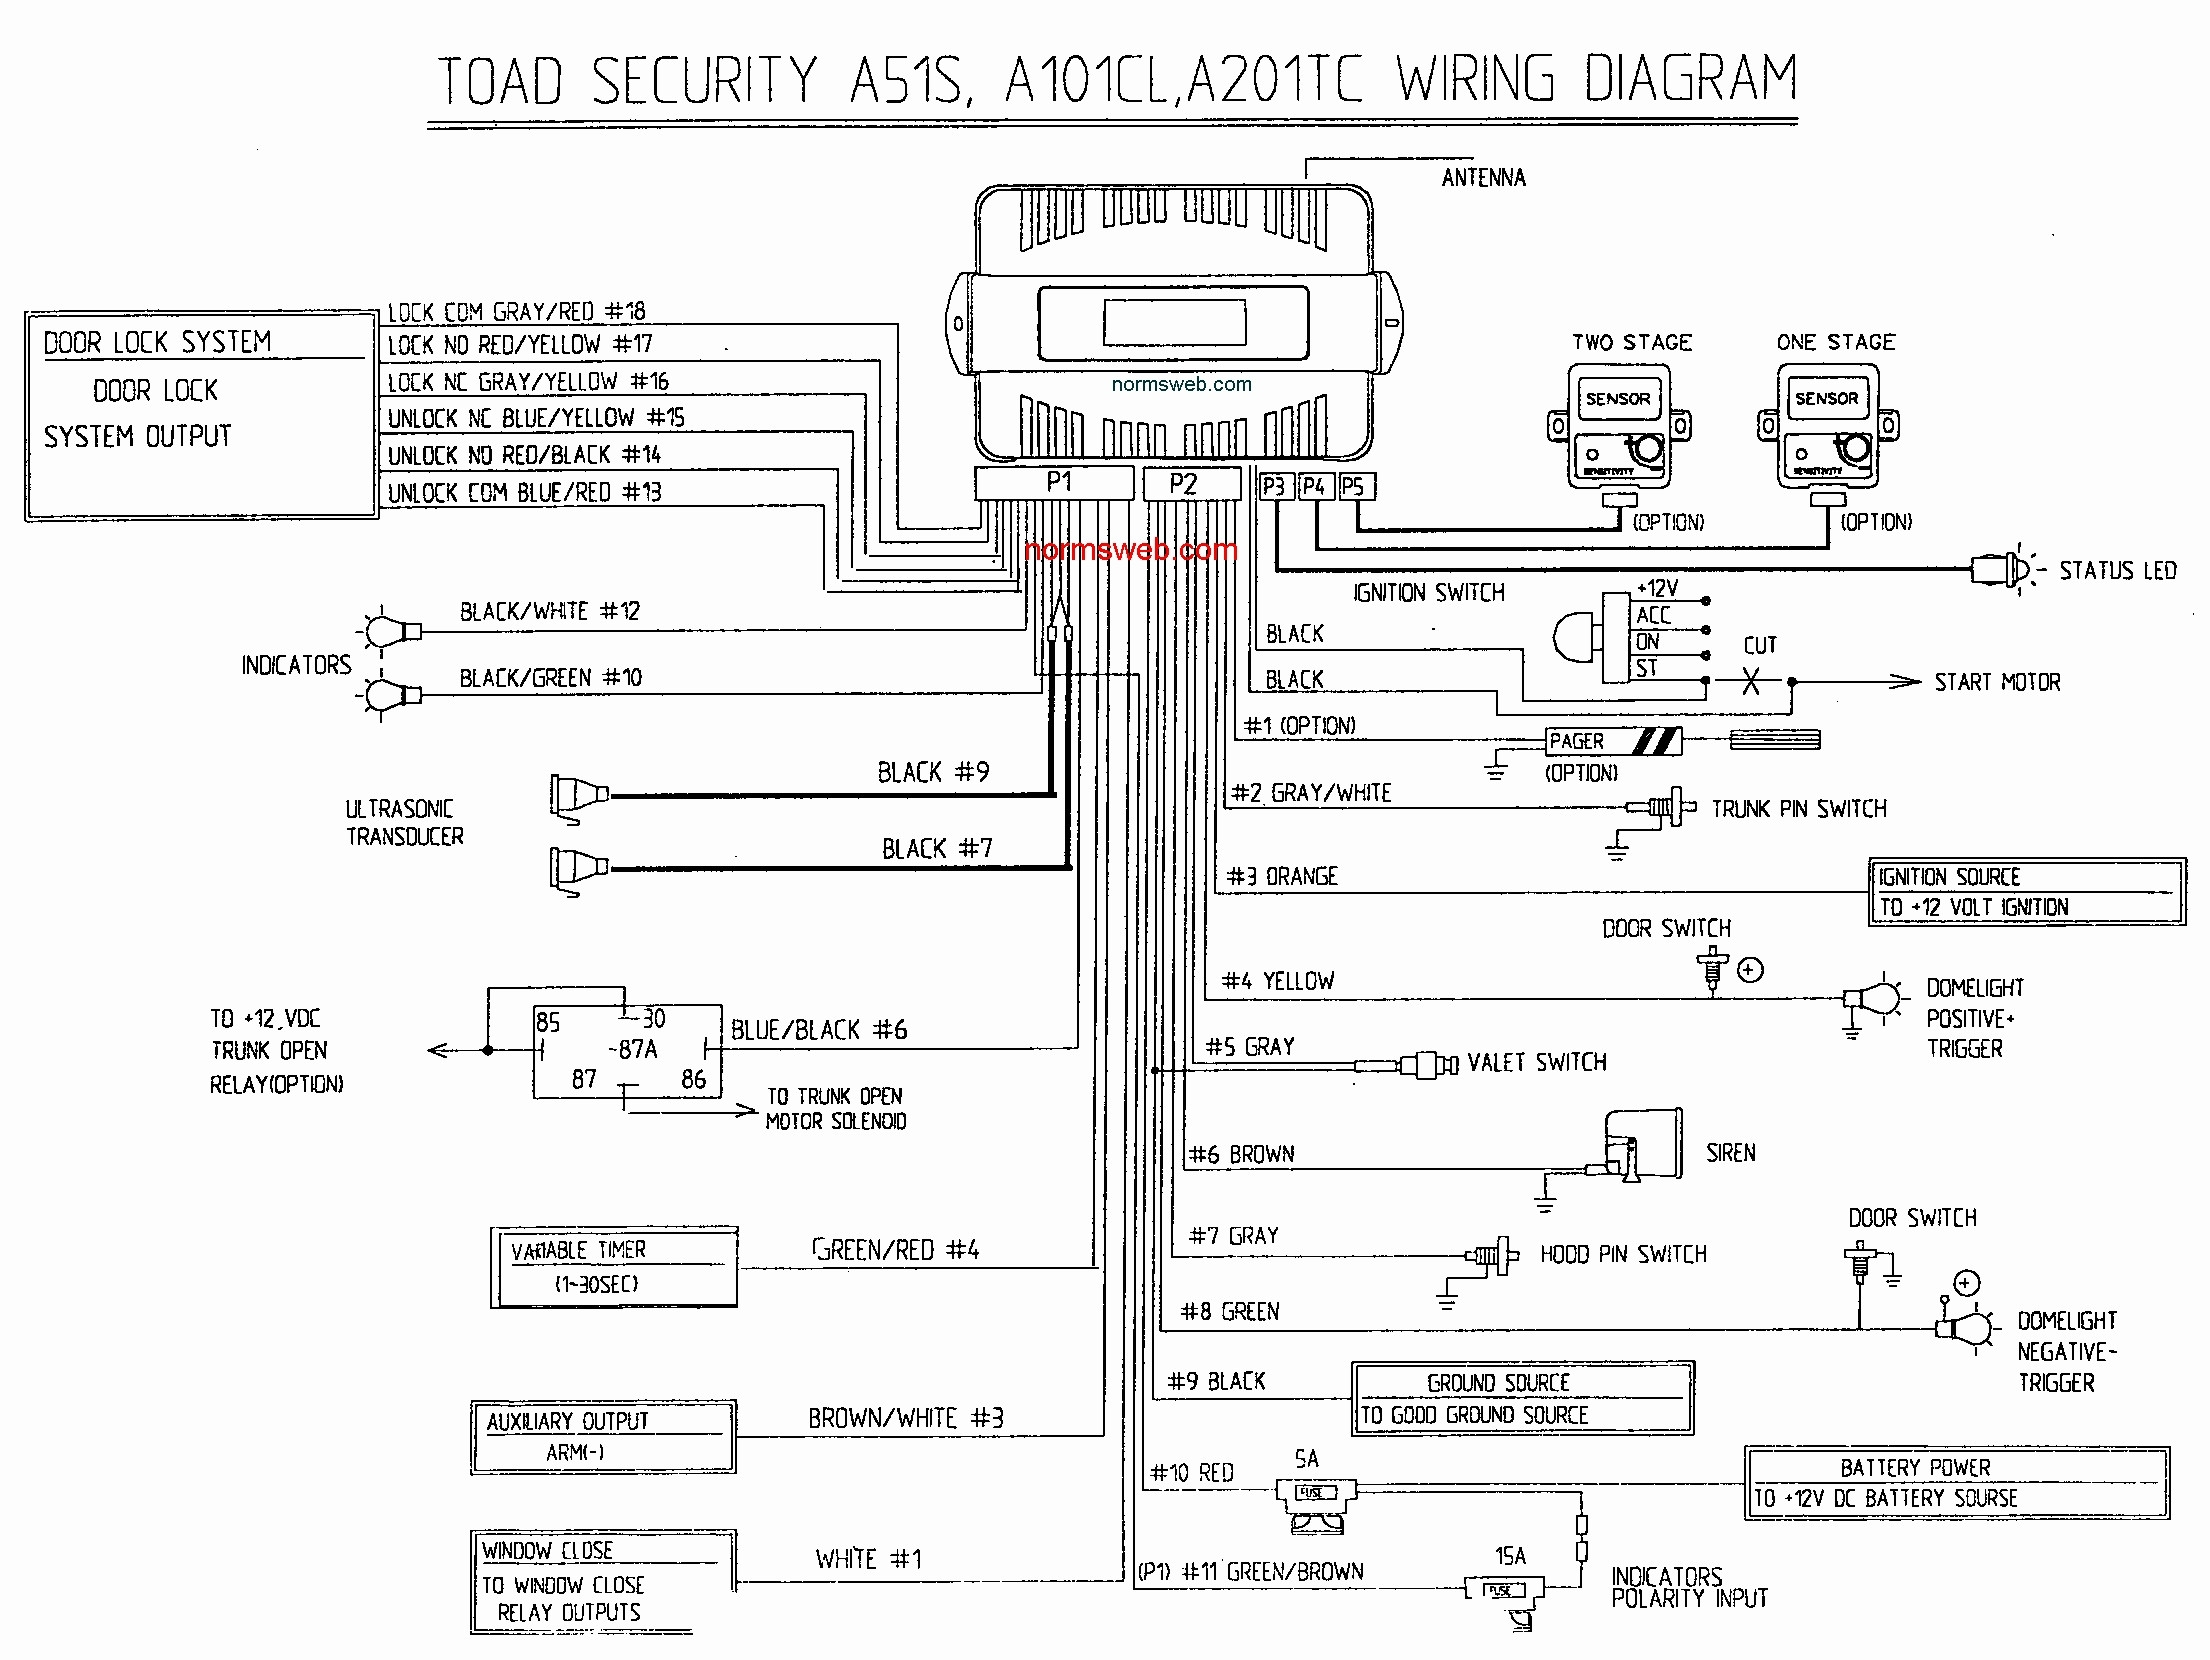 bulldog security alarm wiring diagram Collection-Wiring Diagram Intruder Alarm New Wiring Diagram Car Alarm Wiring Diagram Unique Bulldog Security 14-f